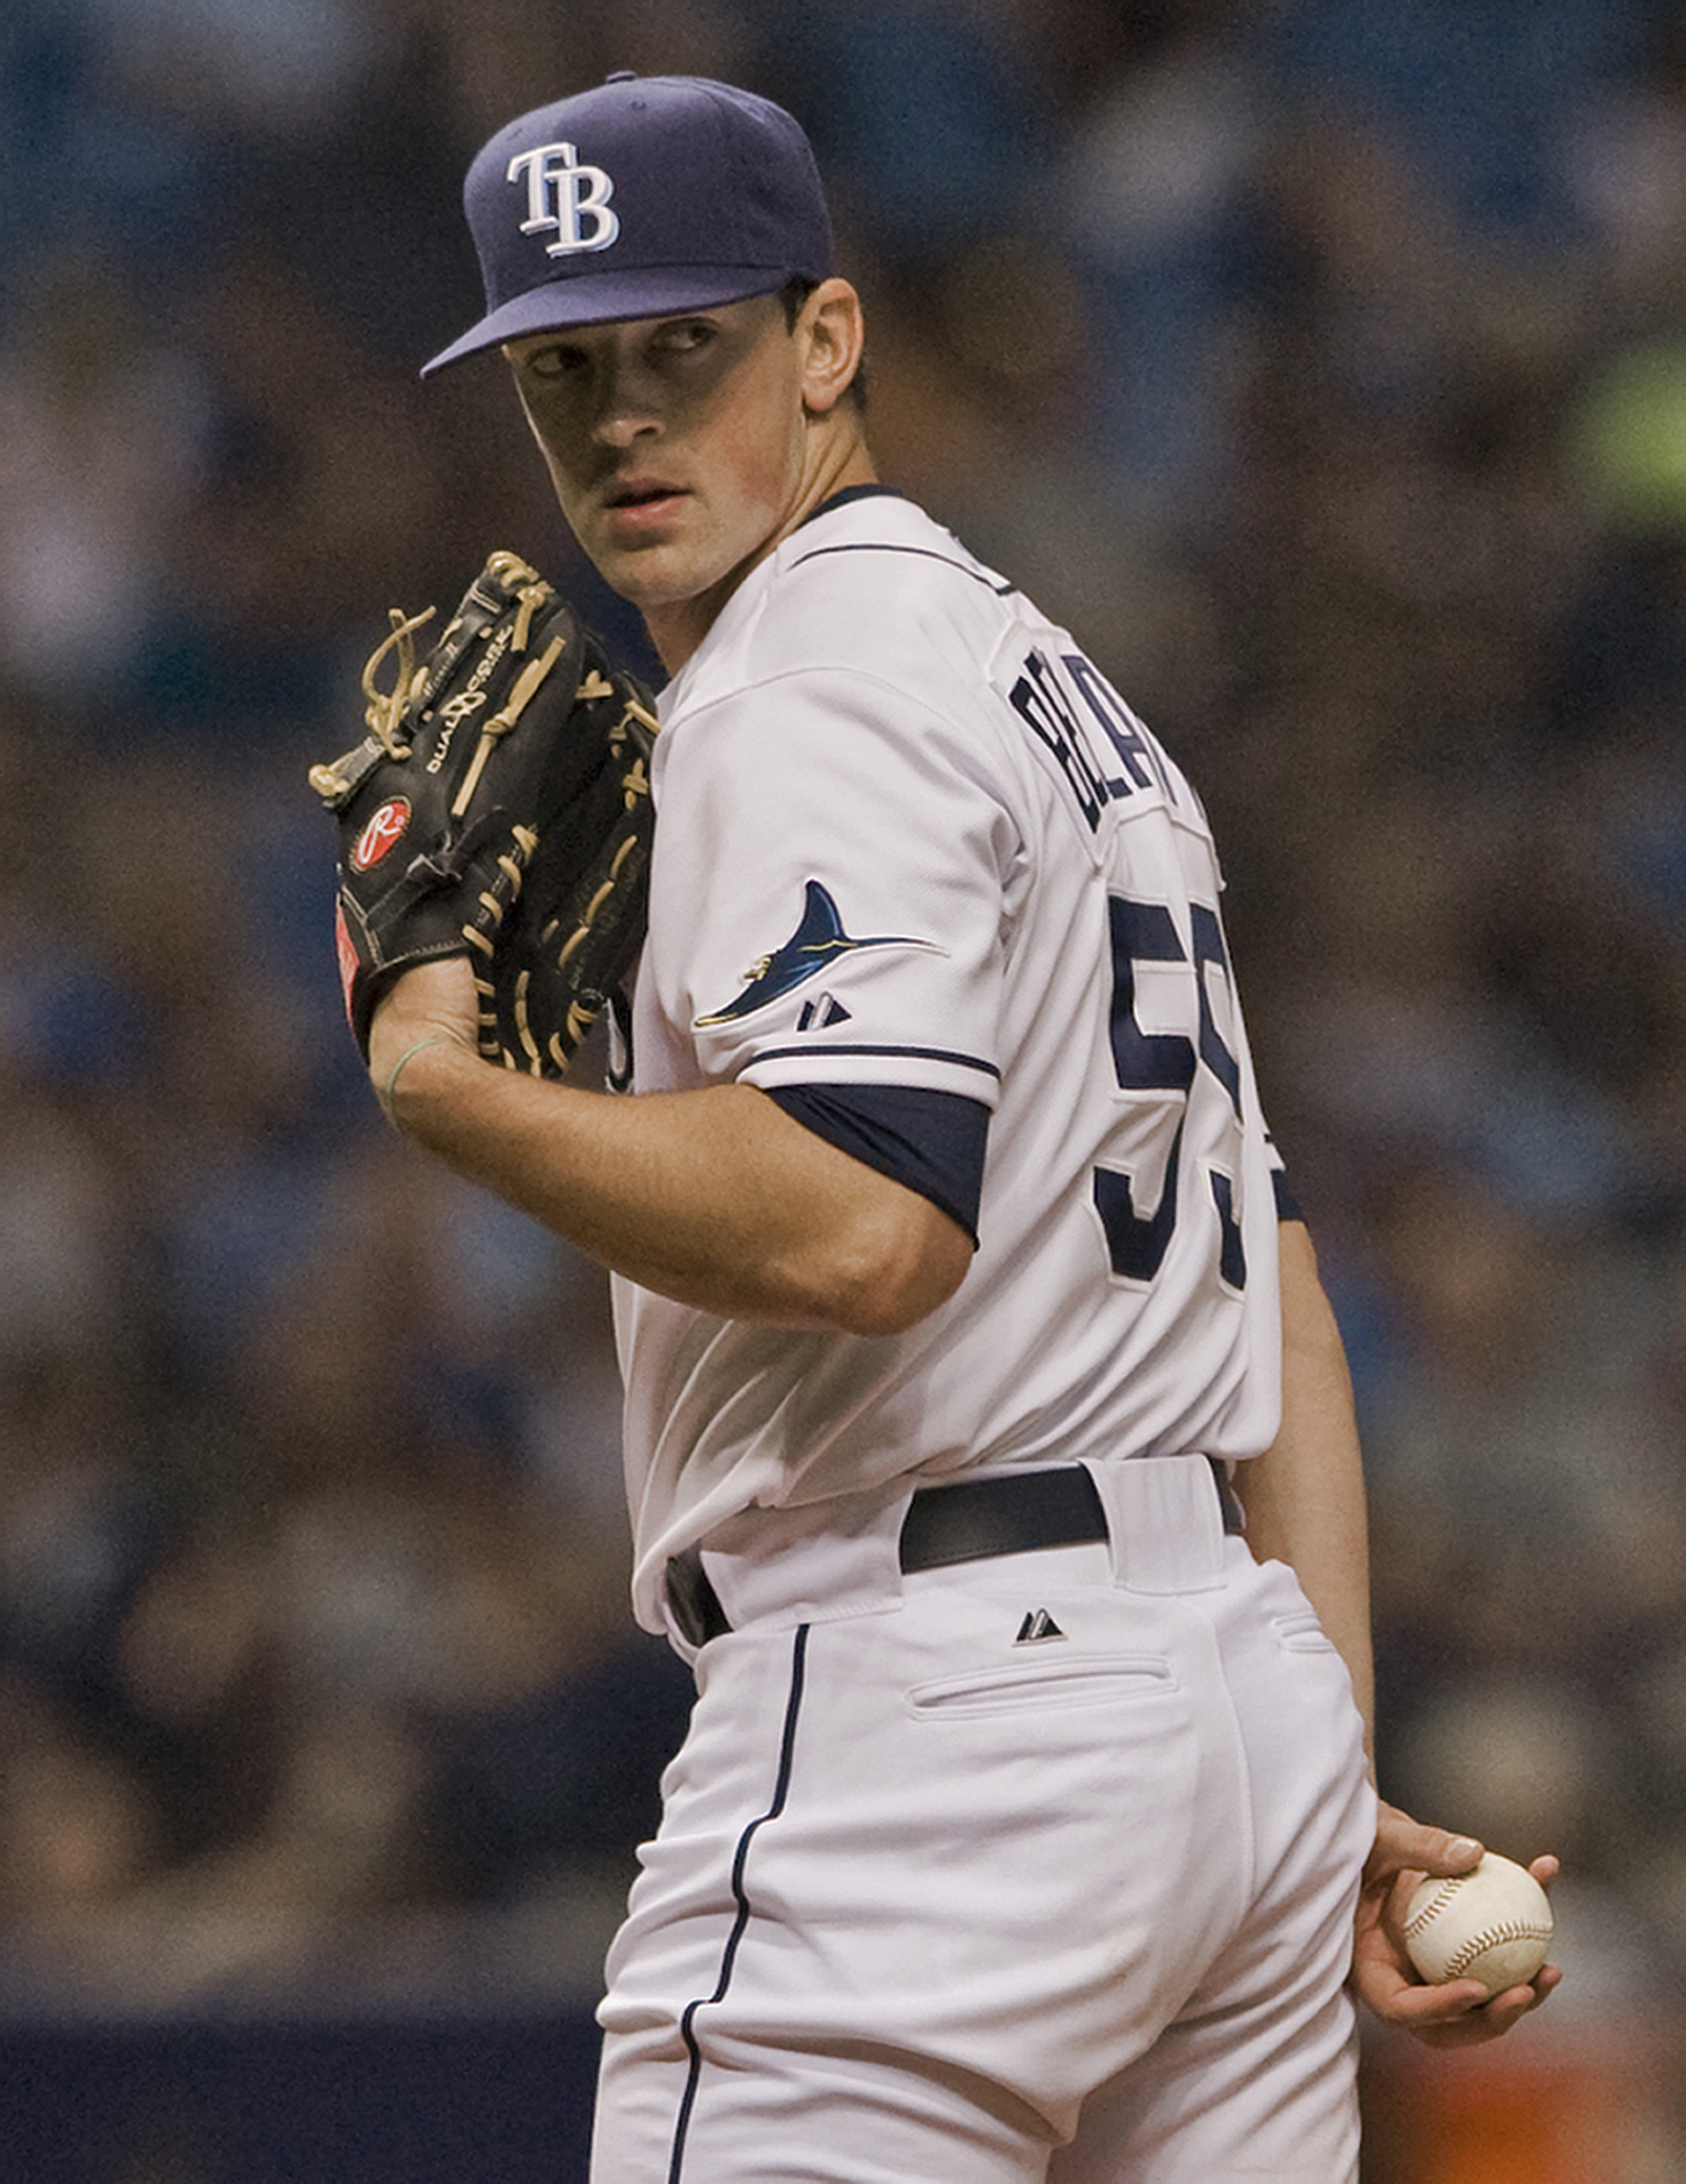 Tampa Bay Rays reliever Andrew Bellatti looks at a Texas Rangers baserunner during the ninth inning of a baseball game Saturday, May 9, 2015, in St. Petersburg, Fla. Bellatti earned the win, pitching three innings of the Rays' 7-2 win over Texas. (AP Phot